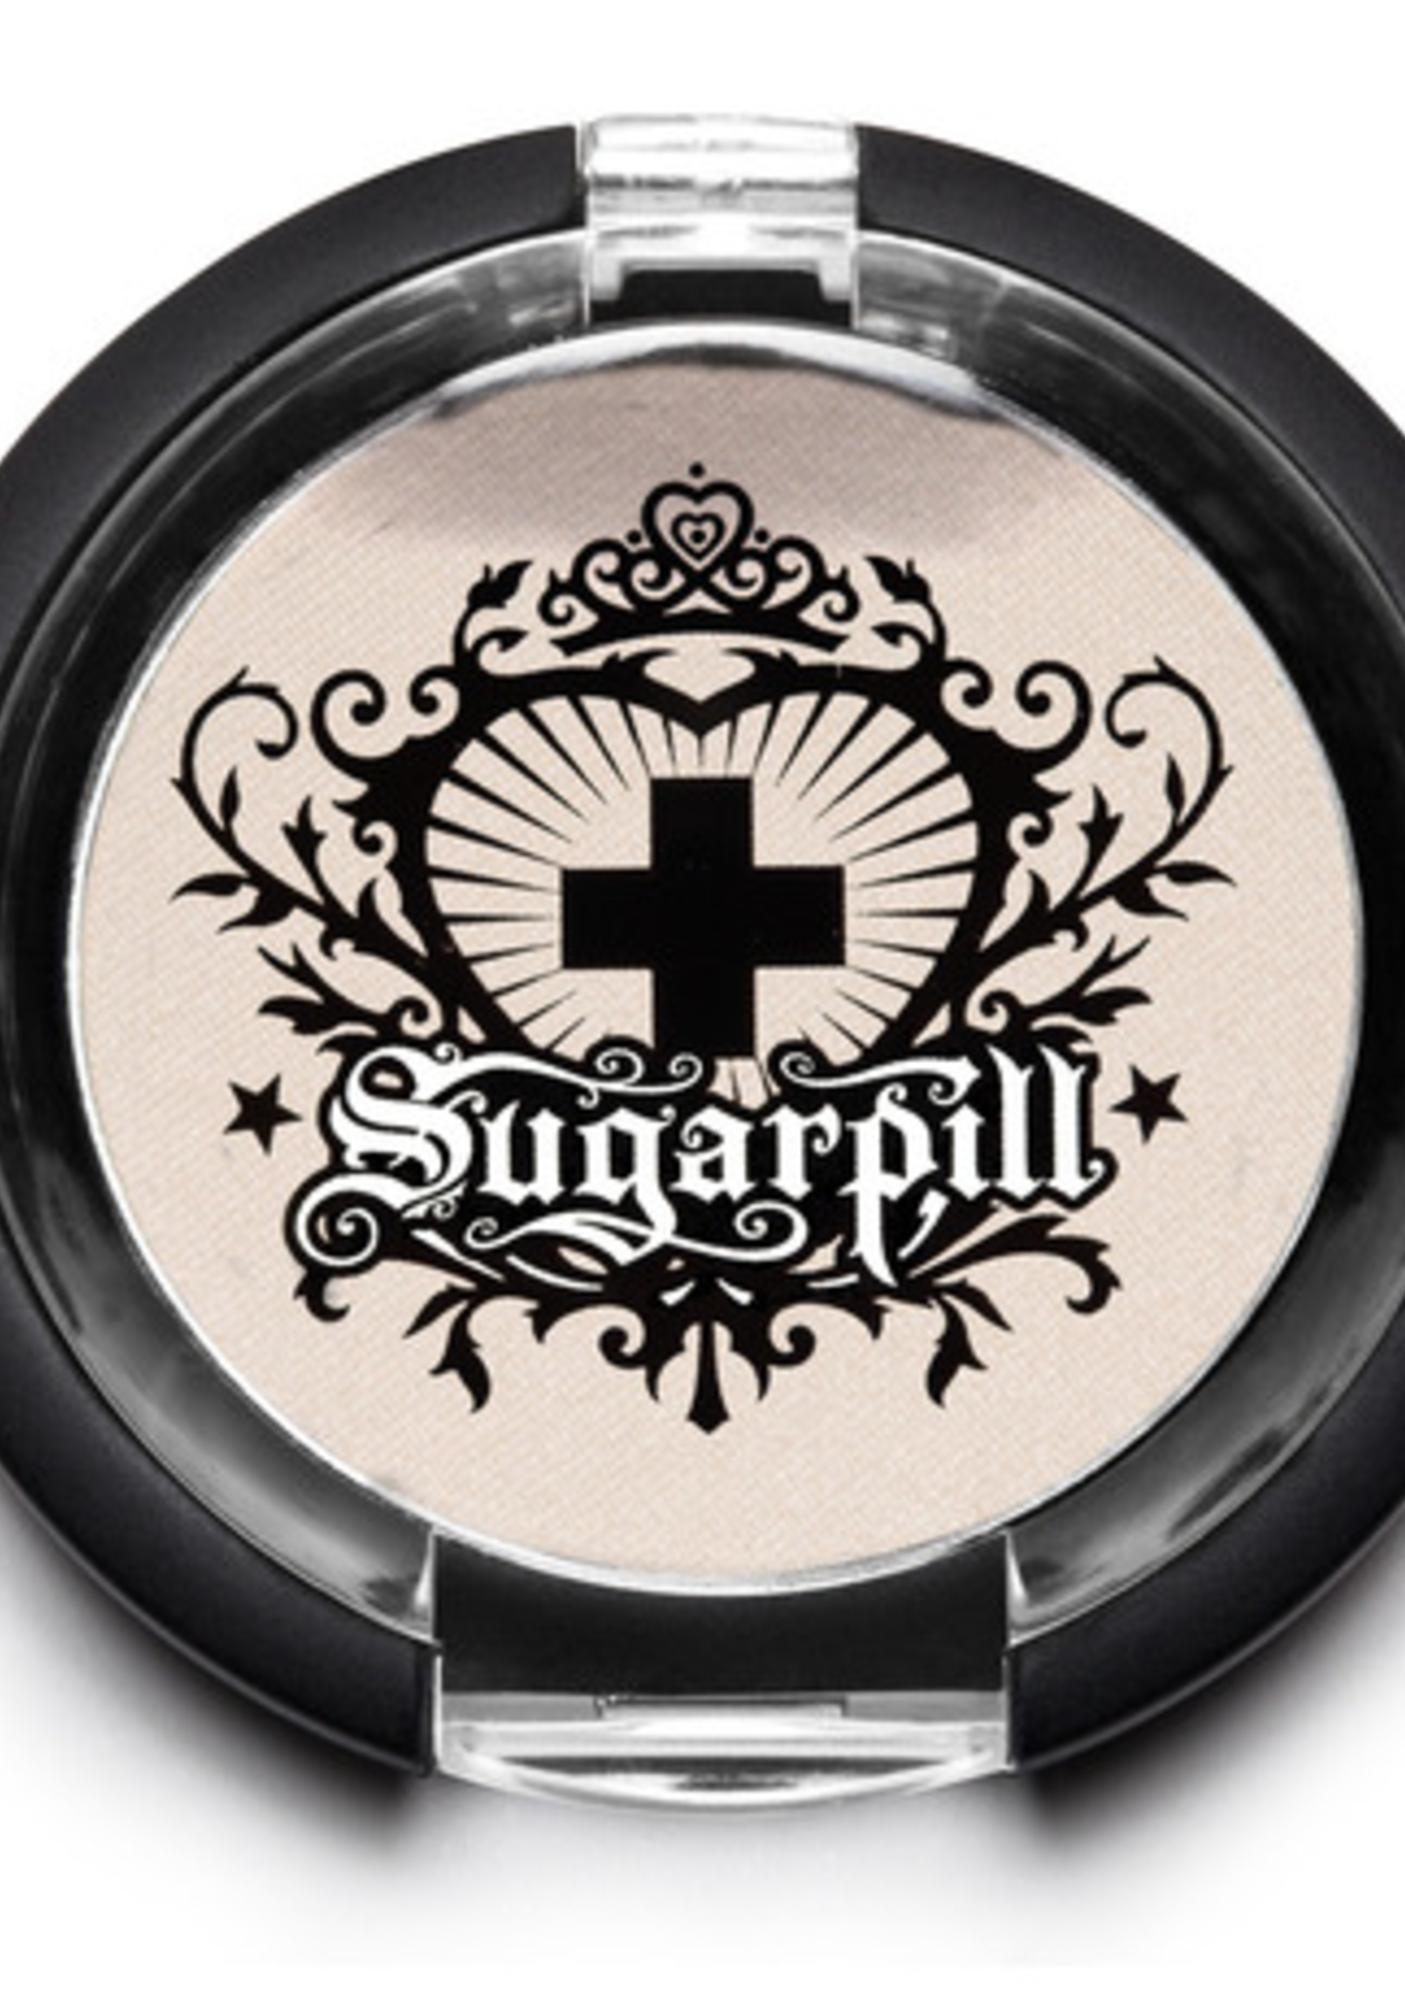 Sugarpill Diamond Eyes Pressed Eyeshadow